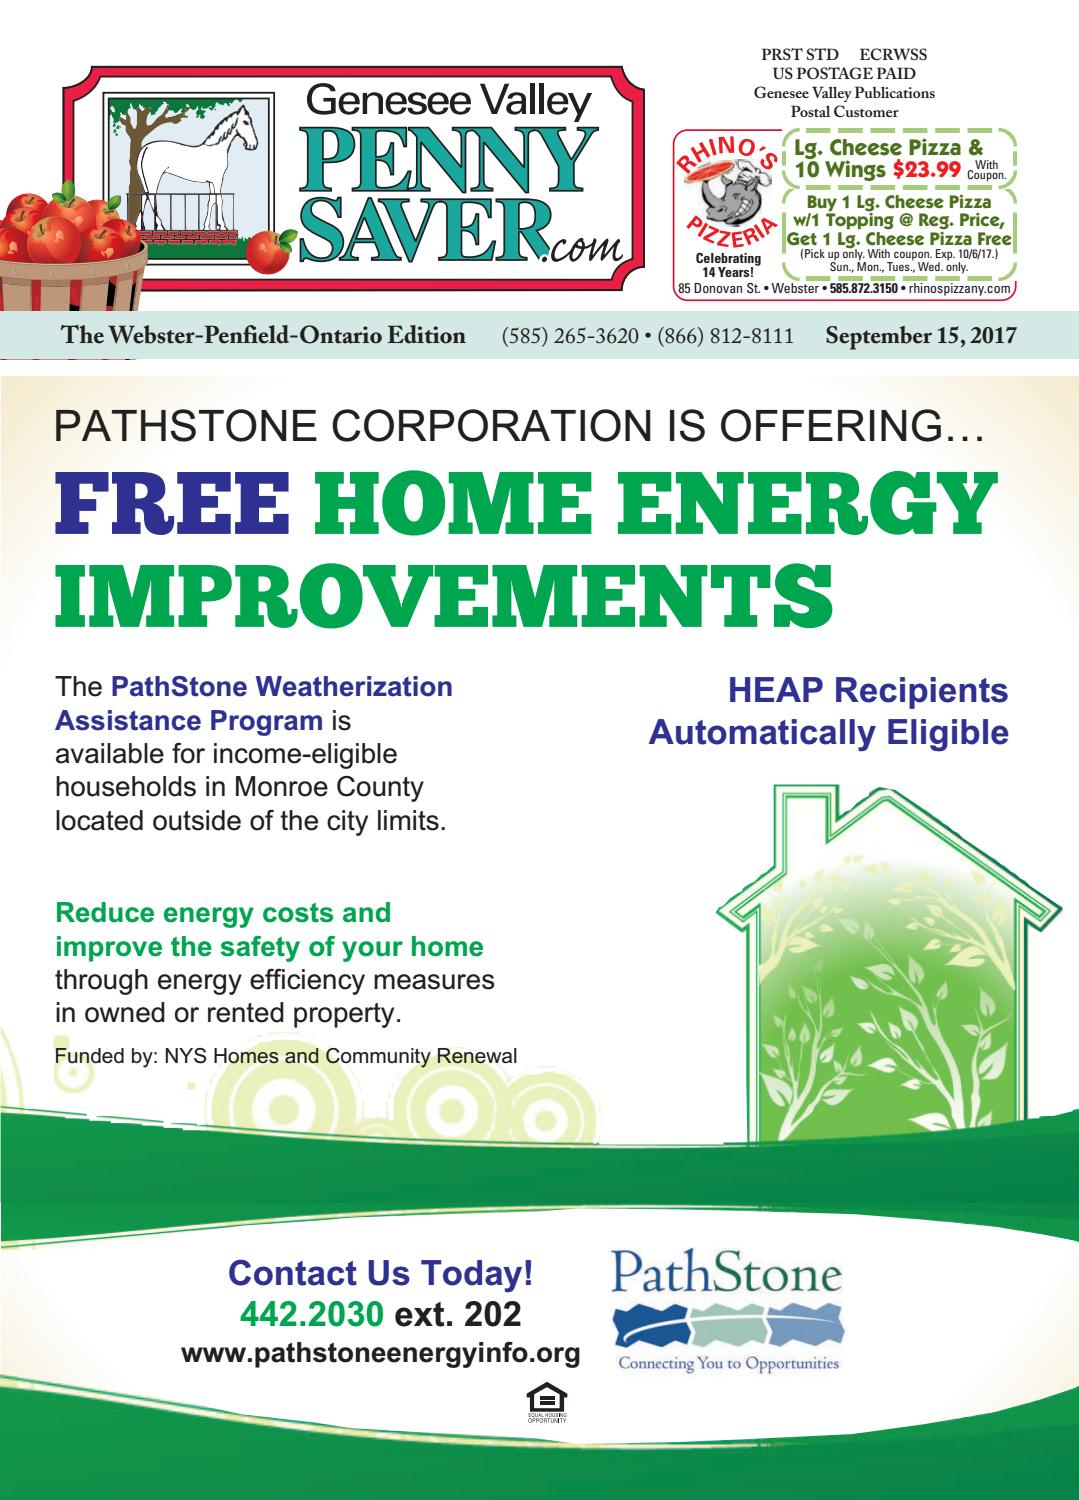 The Genesee Valley Penny Saver WebsterPenfieldOntario Edition - Free roofing invoice template online clothing stores for juniors